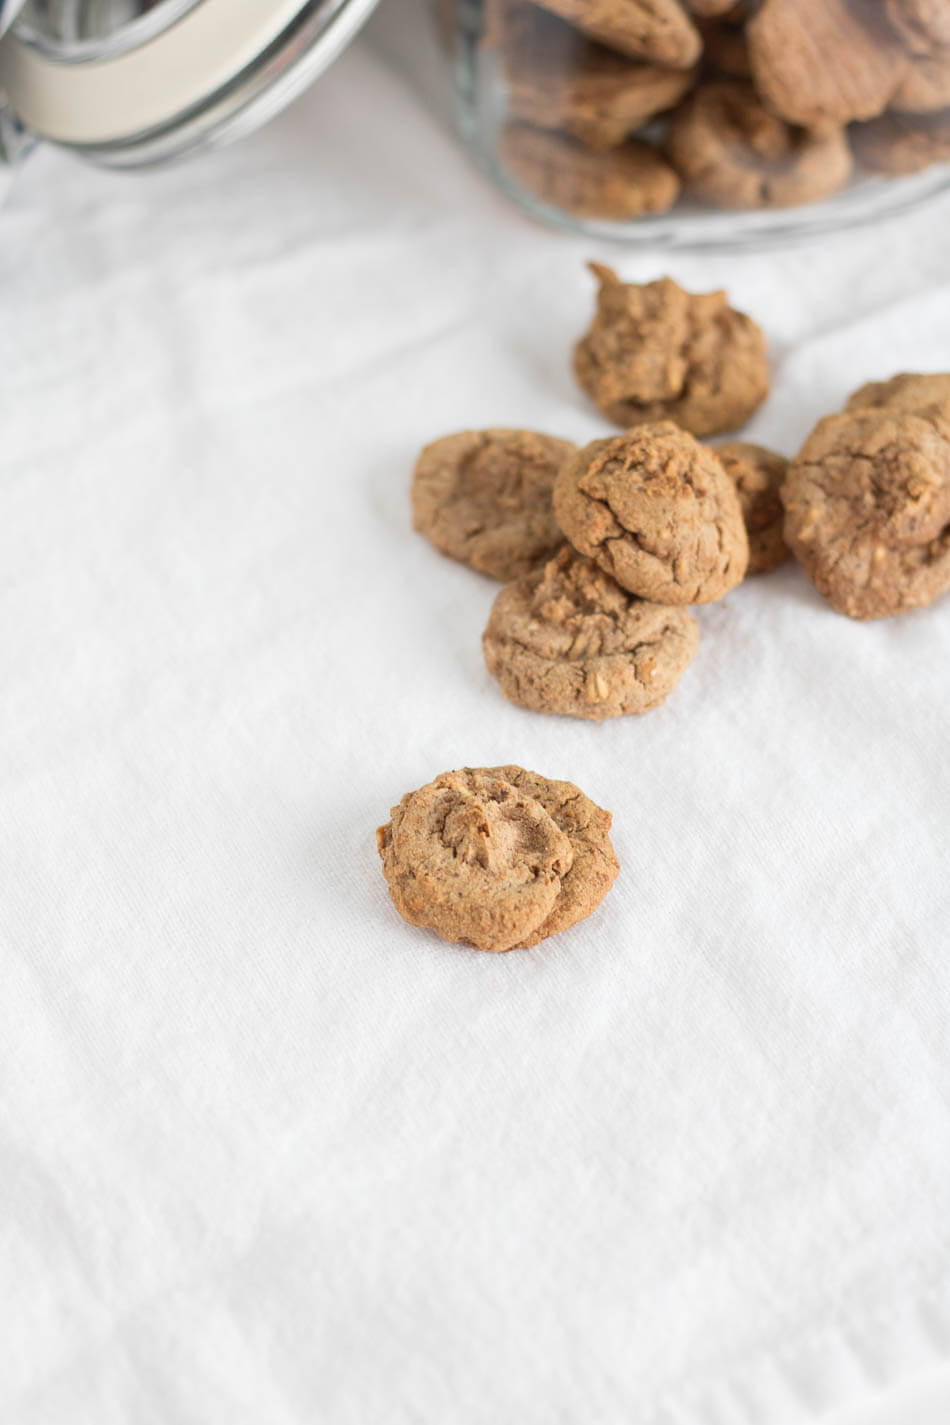 Maple Oat Puppy Treats | infinebalance.com #recipe #dog #doggie #dogtreats